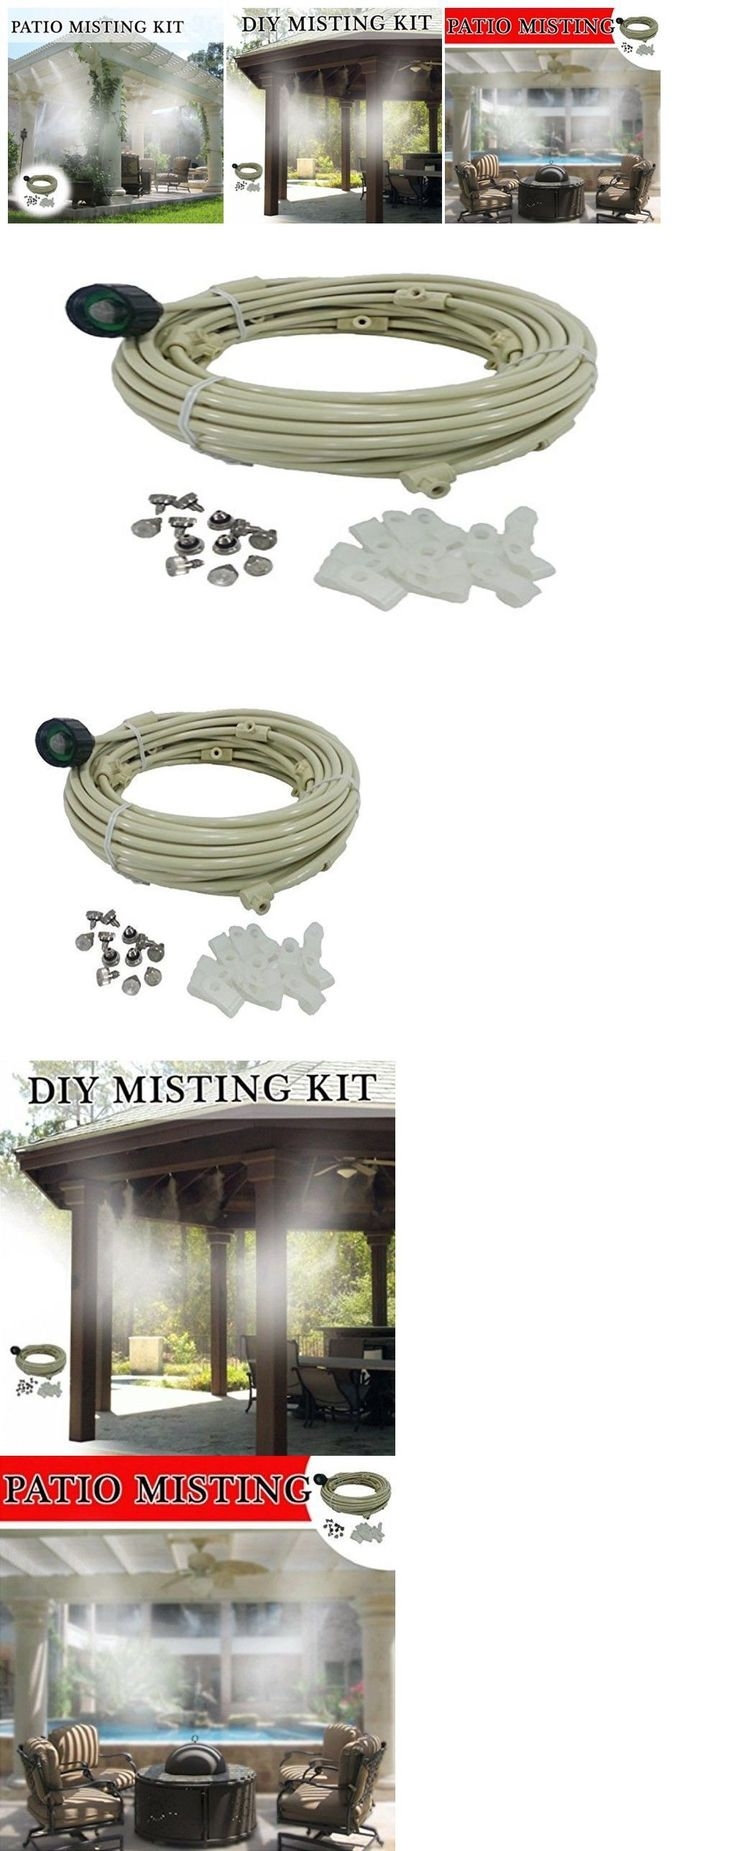 Hose Nozzles and Wands 181015: Misting Kit System Fan Cooling Brass Stainless Steel Mist Nozzles Outdoor 36 Ft -> BUY IT NOW ONLY: $47.99 on eBay!